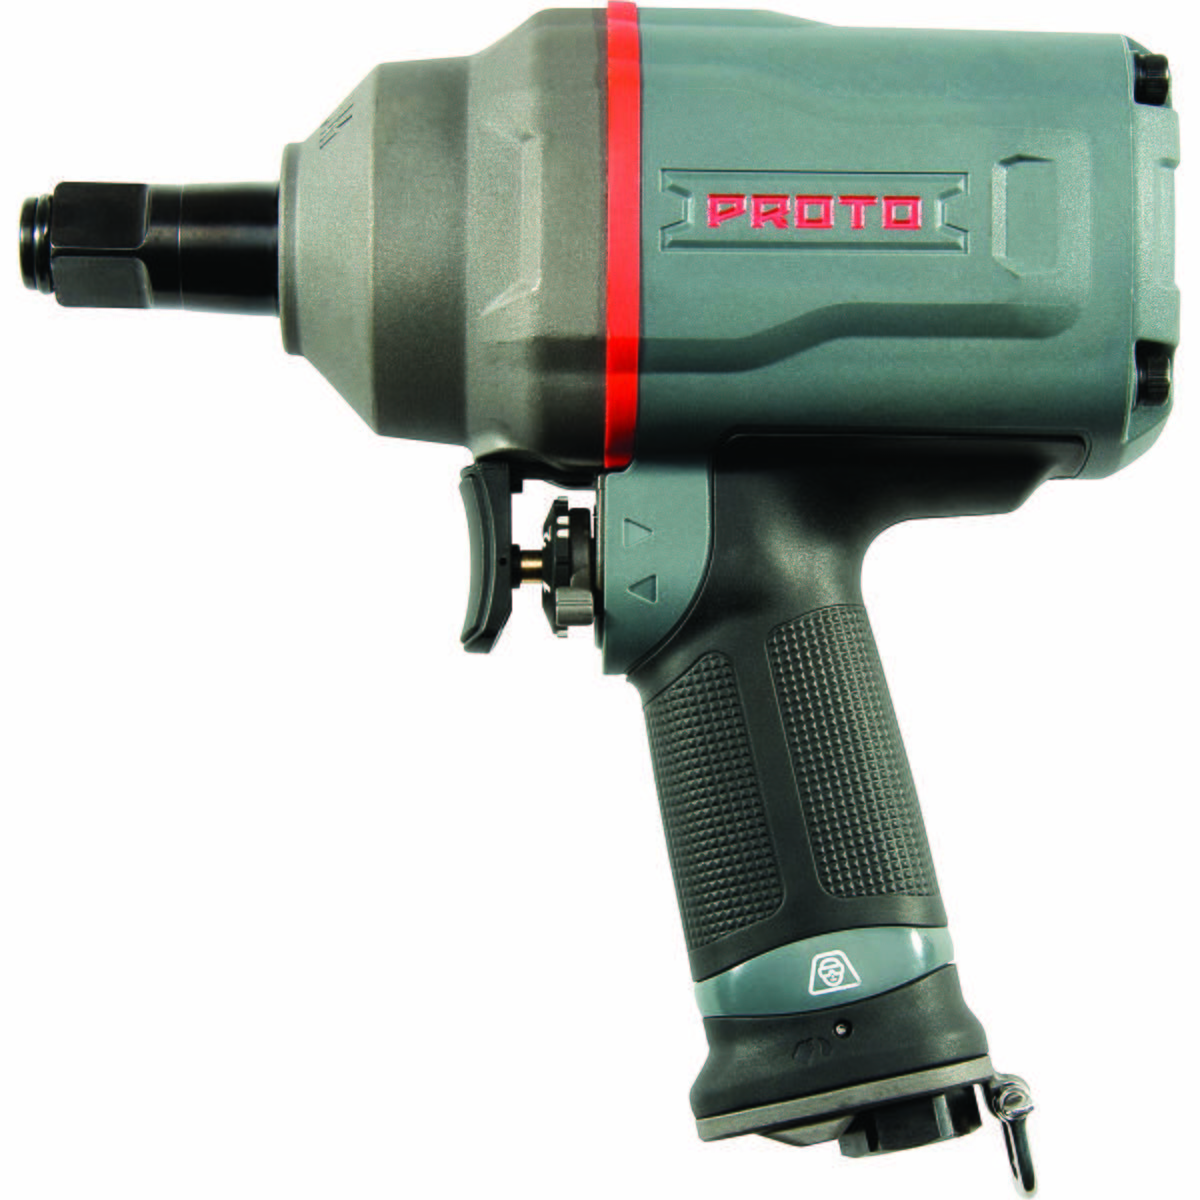 "Proto® 3/4"" Drive Air Impact Wrench"